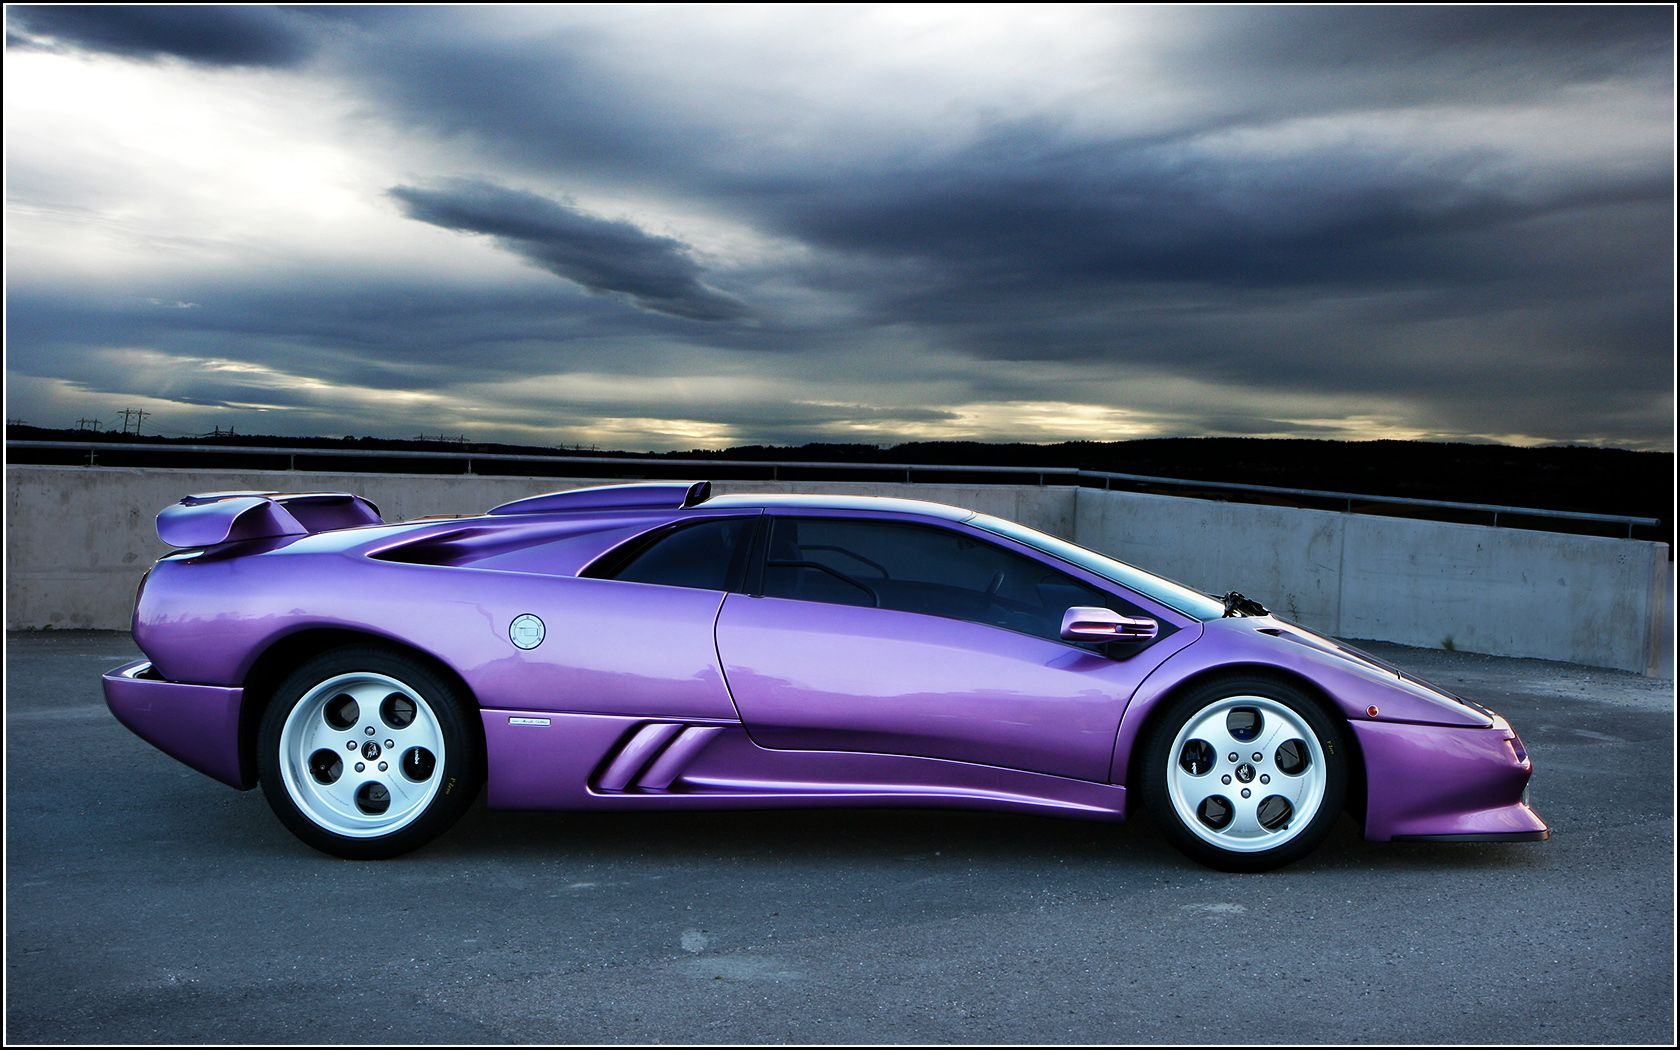 Color car with most accidents - 1992 Lamborghini Diablo Sv Like The Countach But With Improved Handling Maneuverability